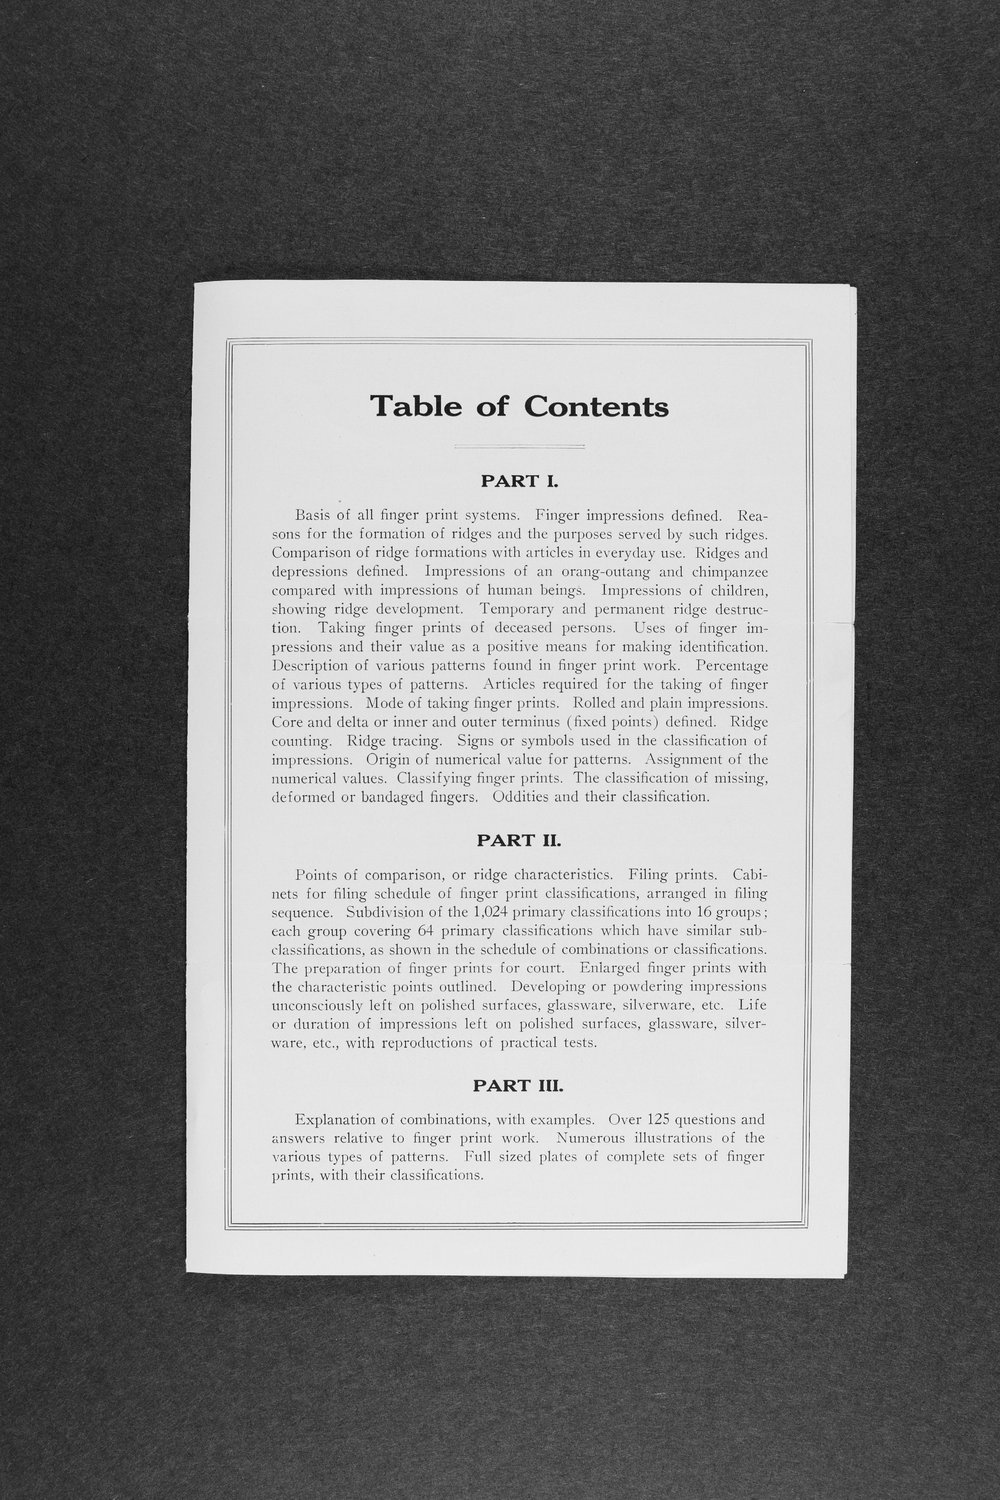 E. P. Lamborn correspondence and research papers - 8